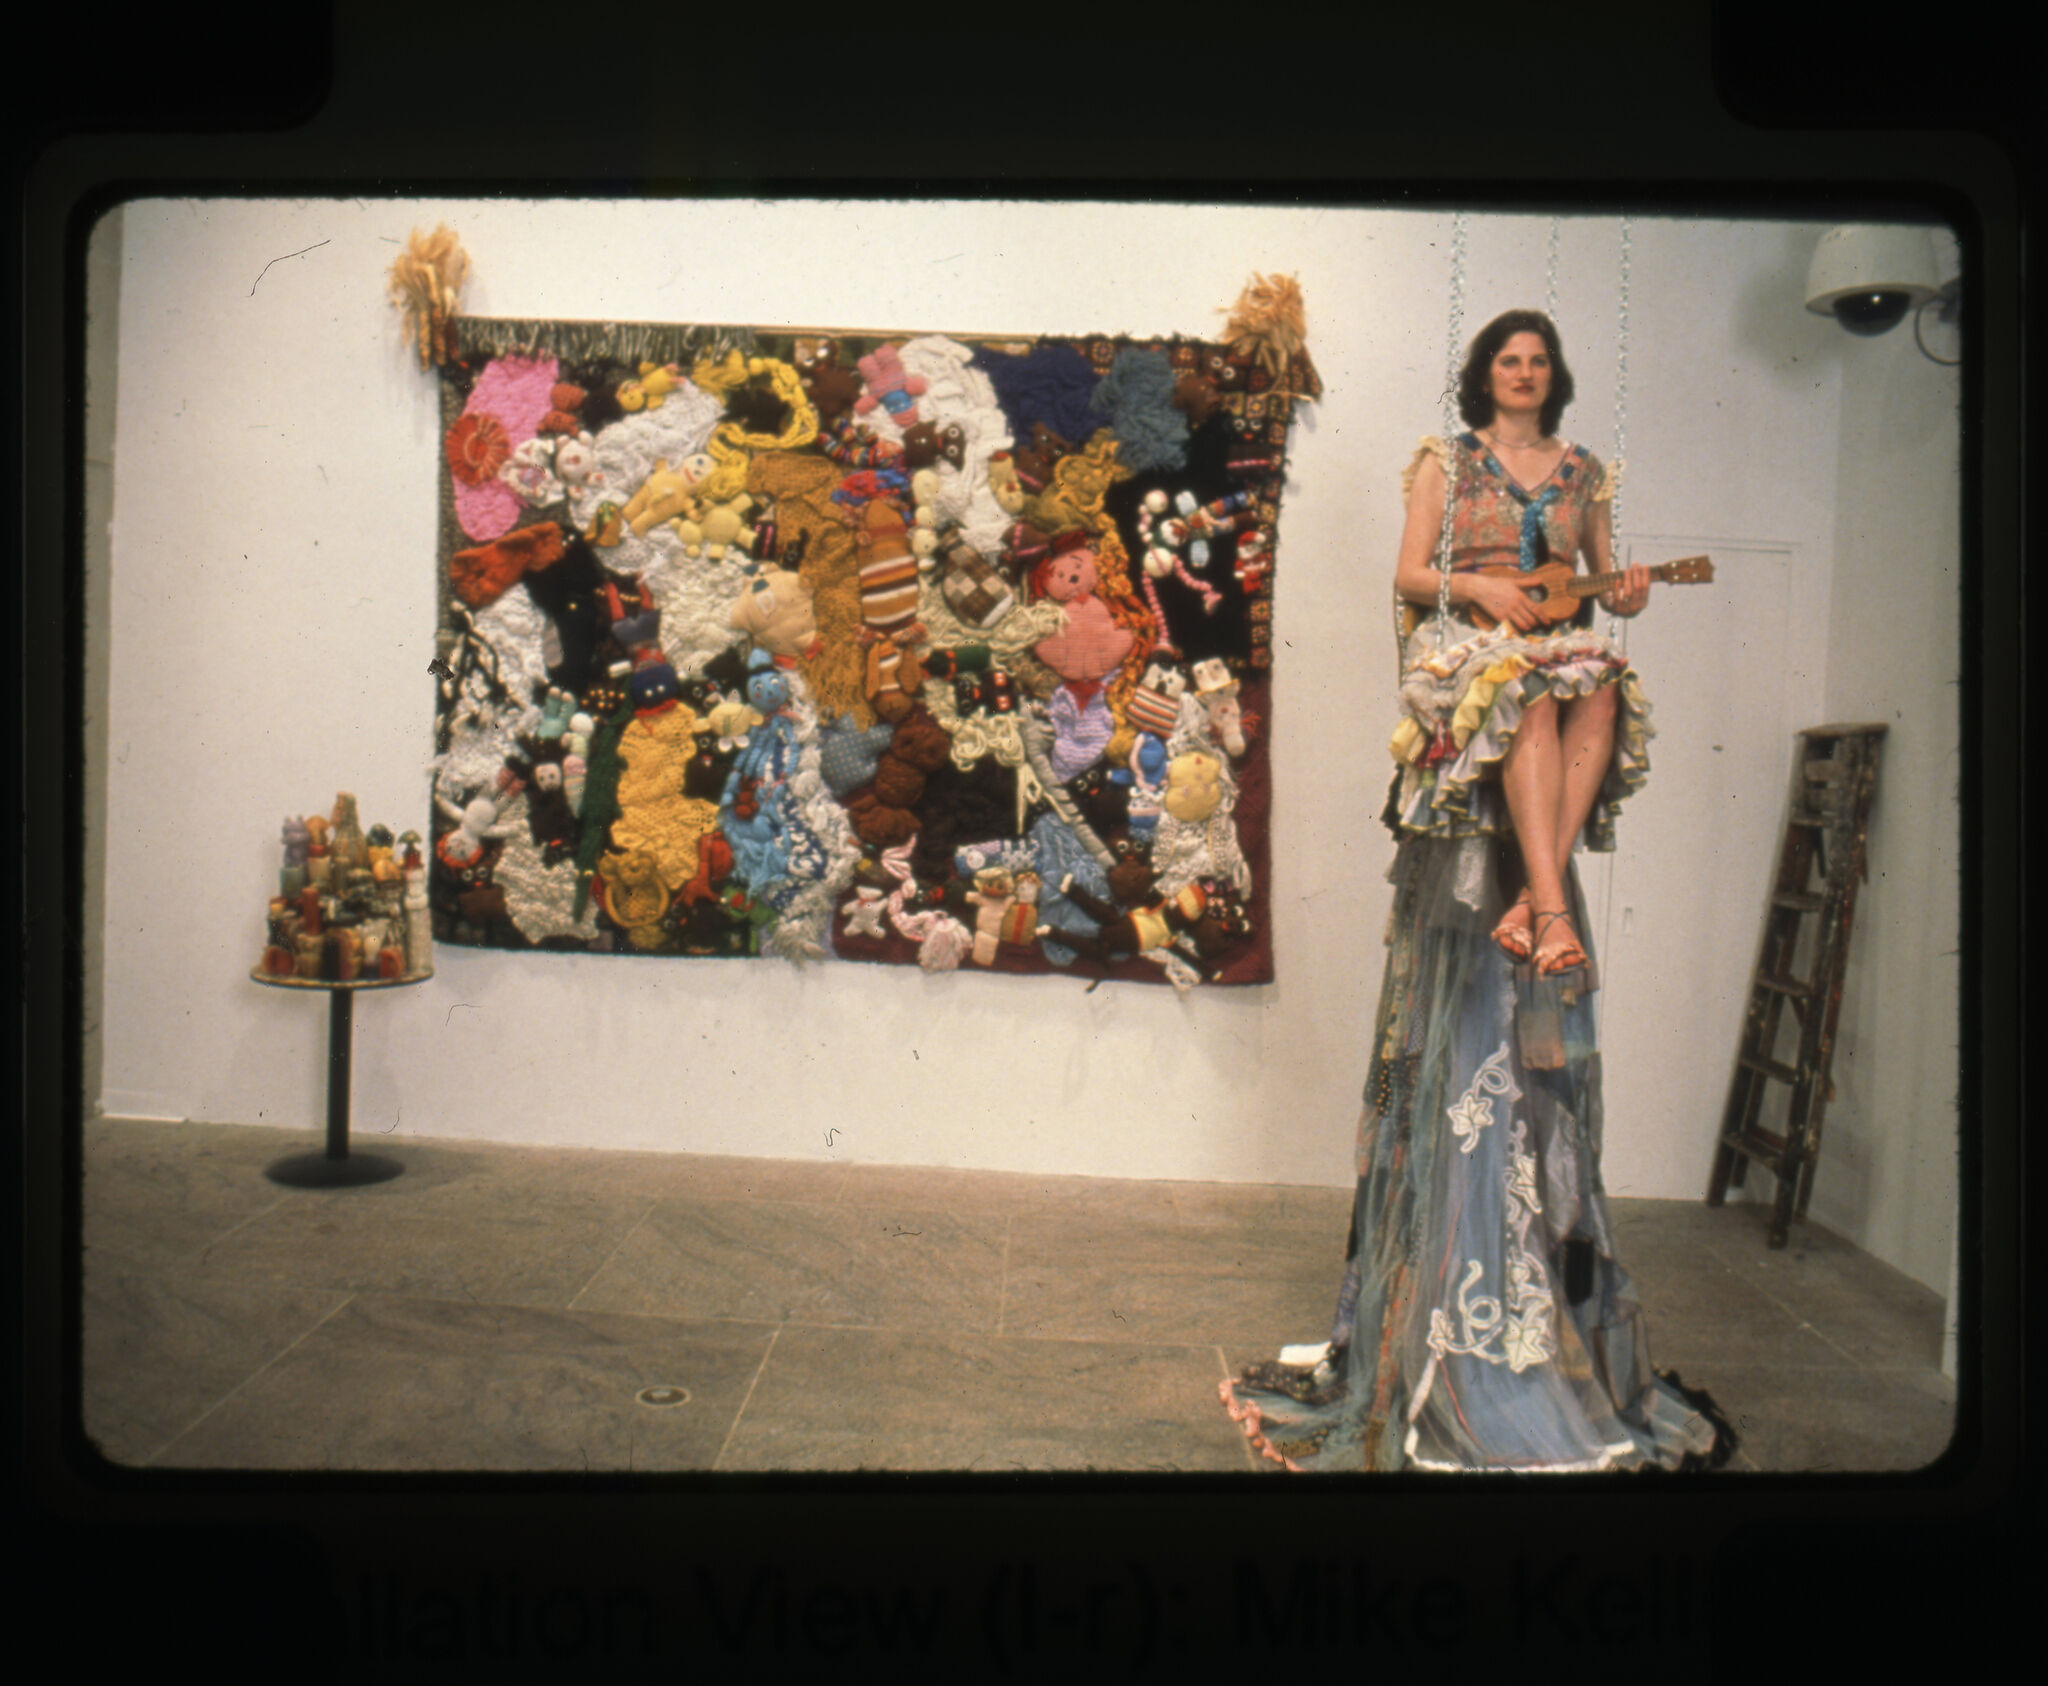 A gallery filled with works of art including a sculpture of a woman holding a ukulele.